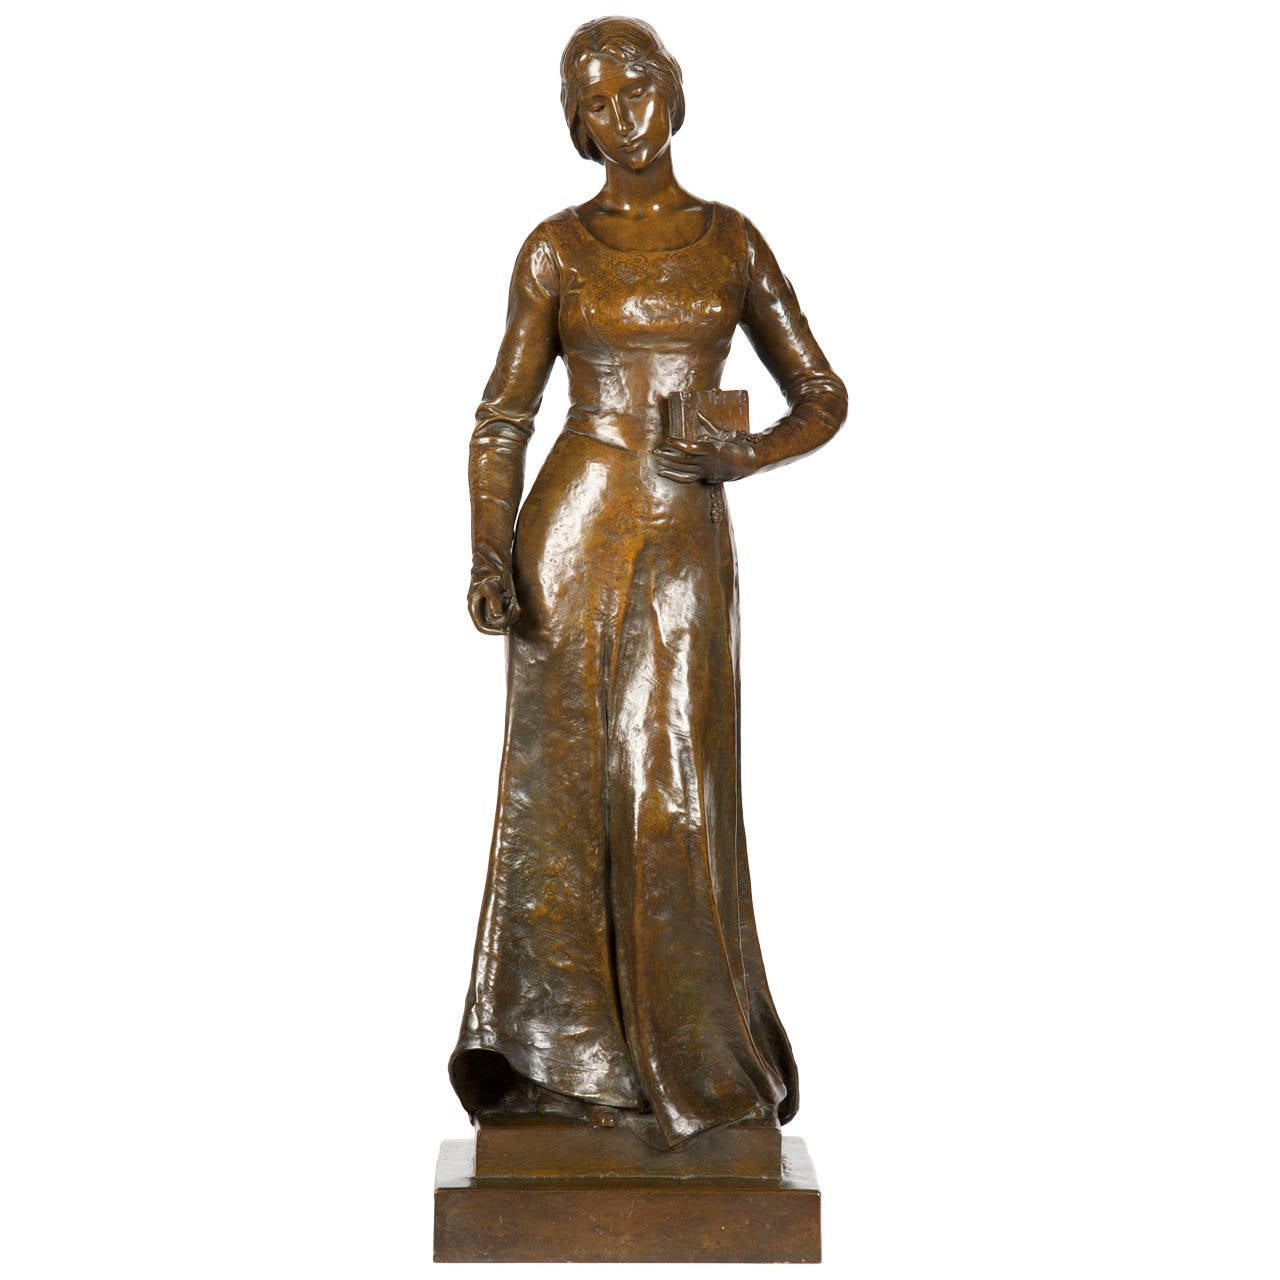 Henri Levasseur Antique French Bronze Sculpture of Maiden with Rosary, 1900